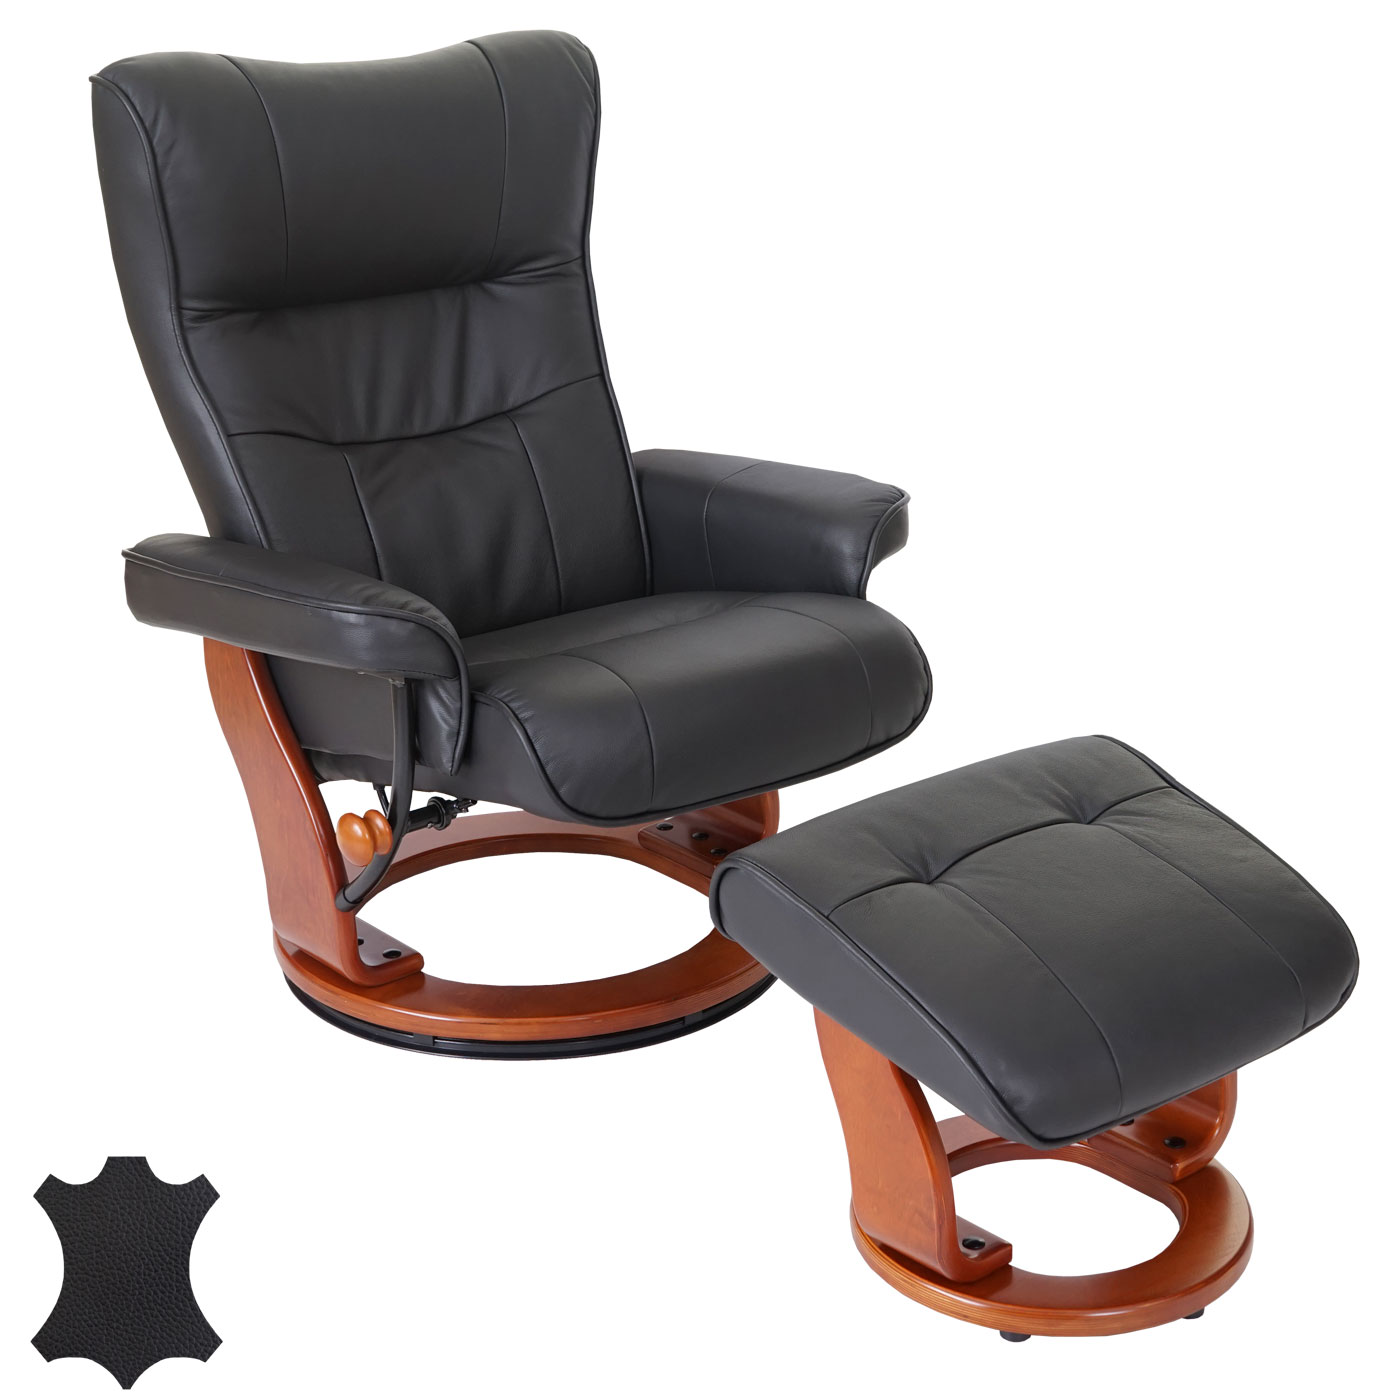 leder relaxsessel tv sessel mit hocker relaxliege fernsehsessel schwarz 56048 ebay. Black Bedroom Furniture Sets. Home Design Ideas